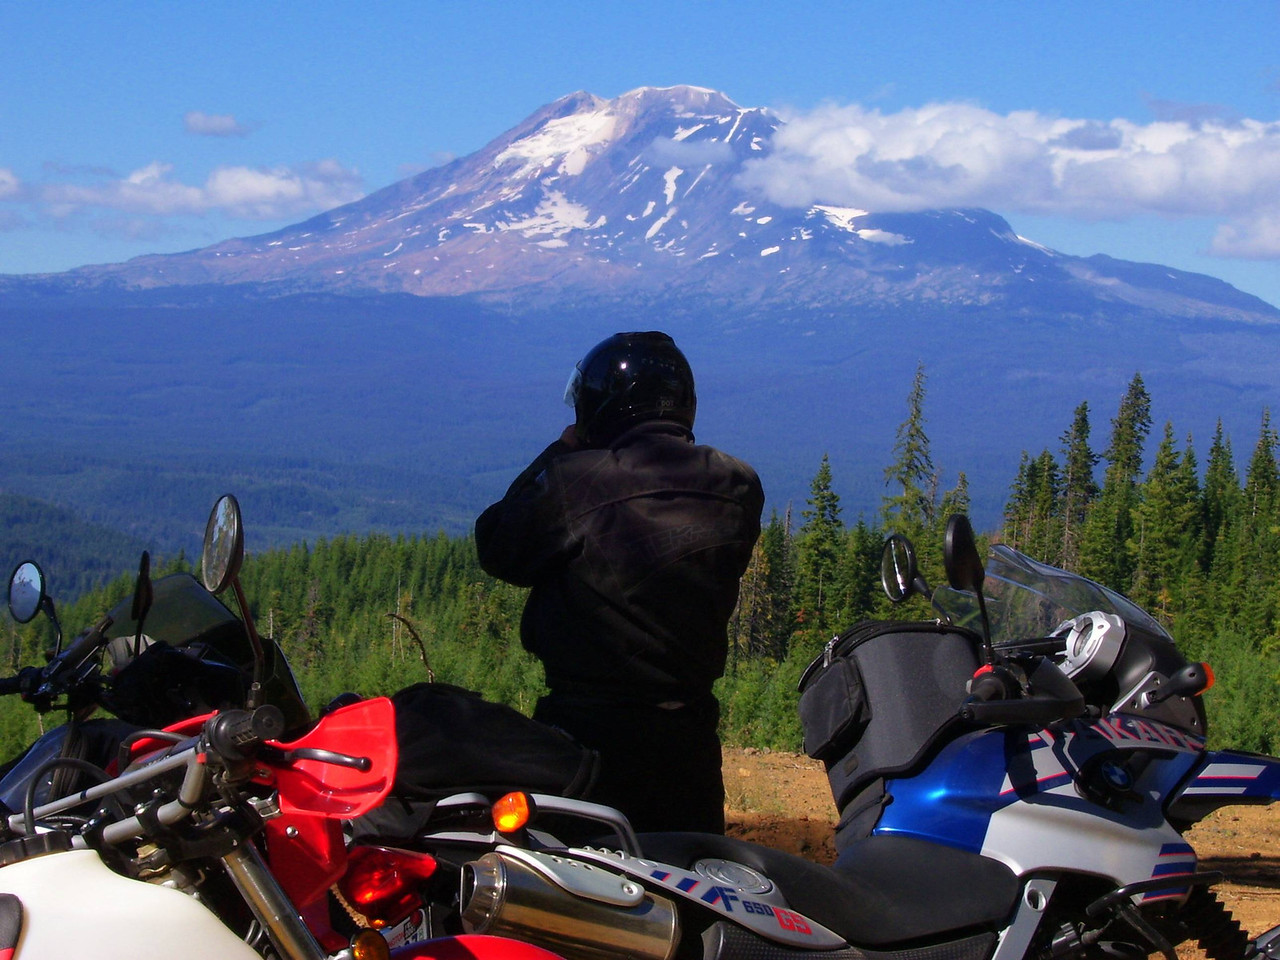 Mt. Adams from the 1840 road.